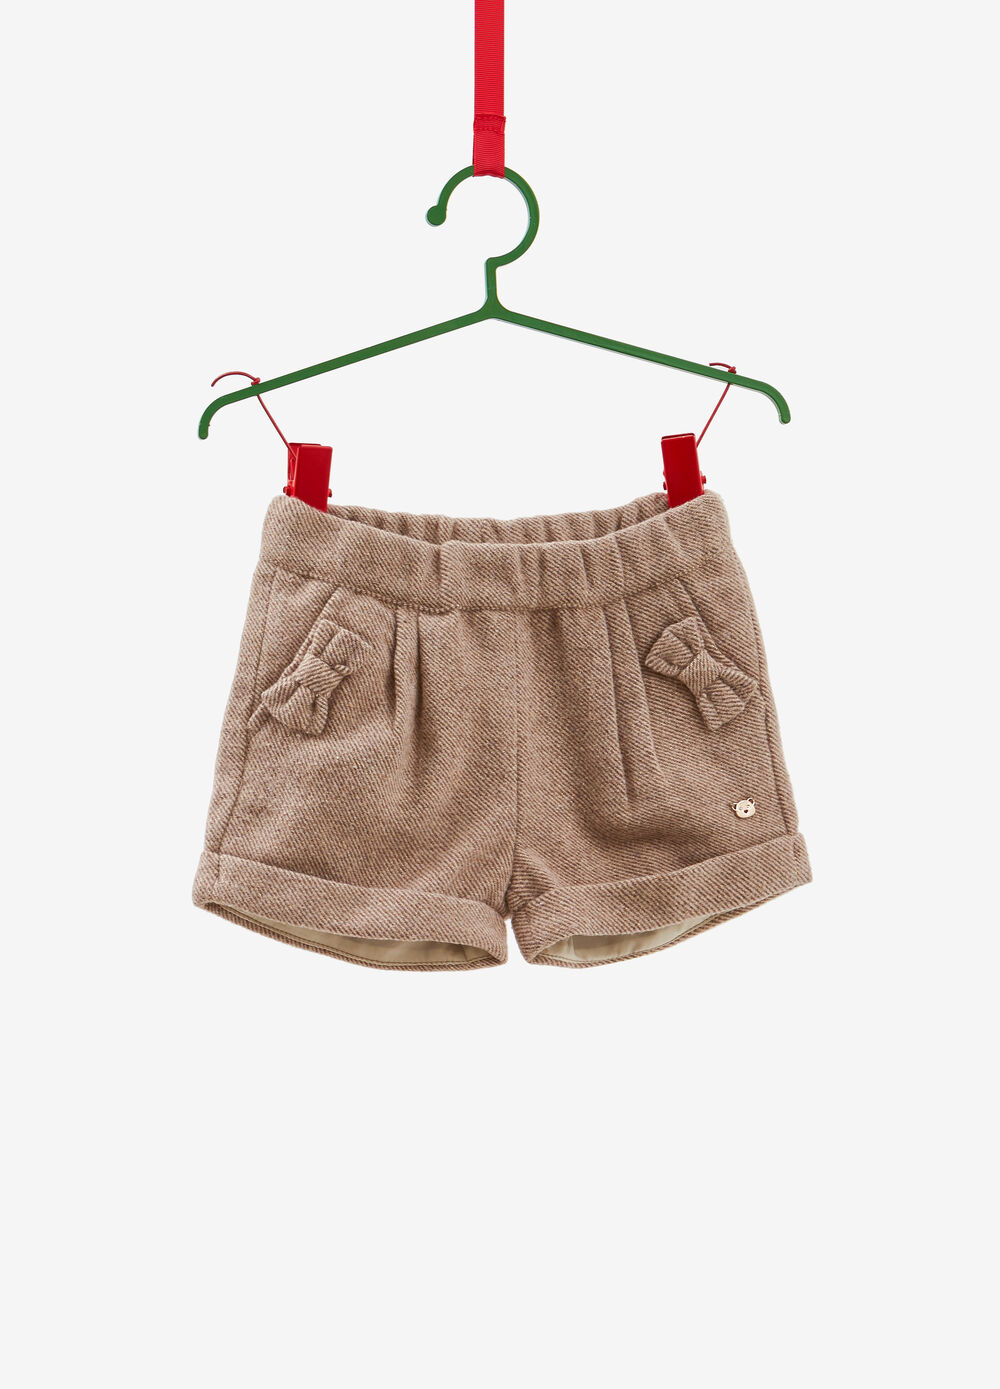 Shorts with lurex and bows with striped pattern